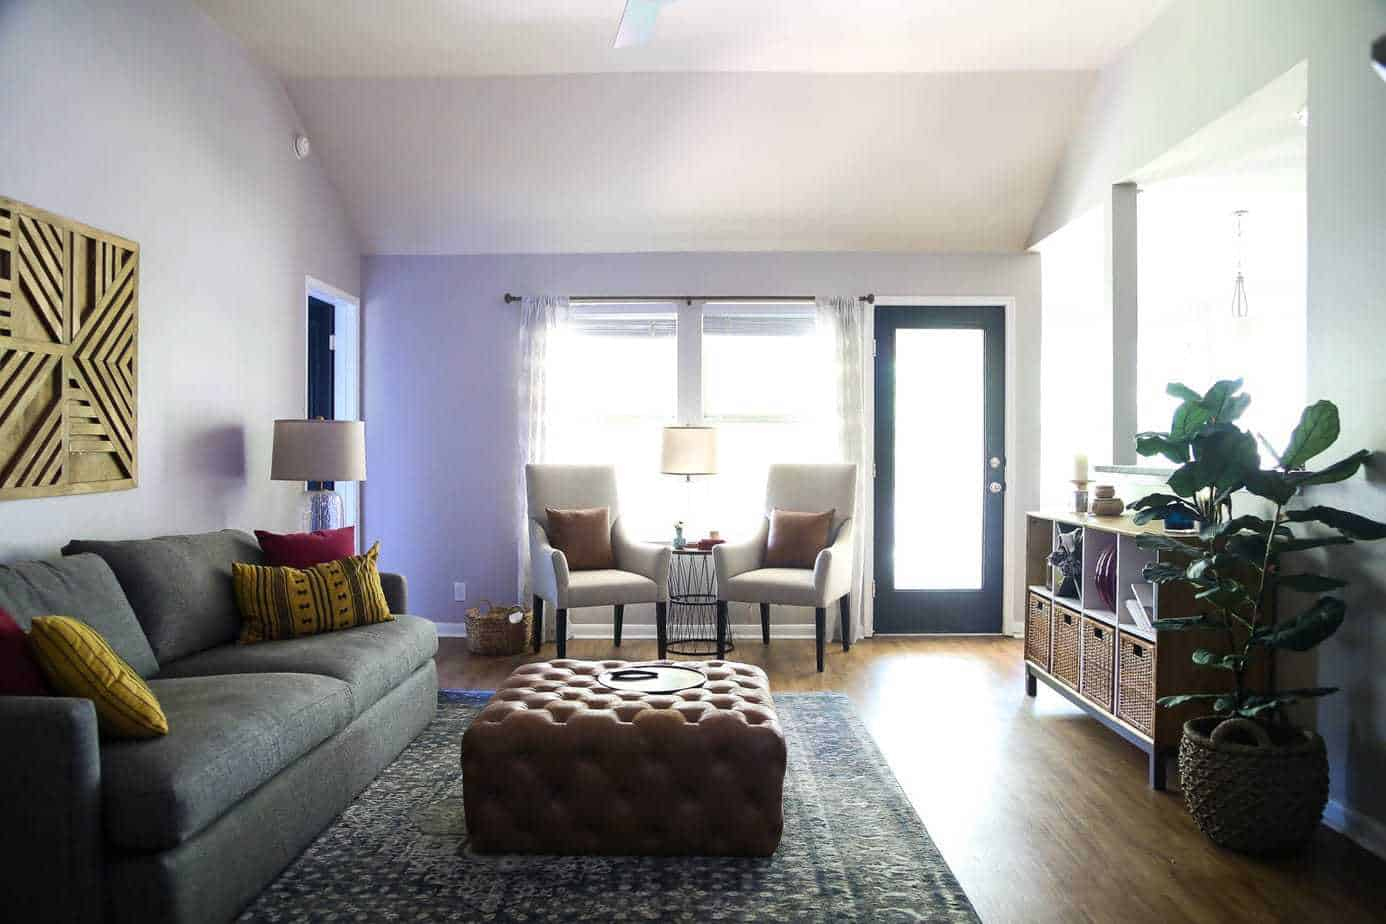 Tips for how to decorate a living room